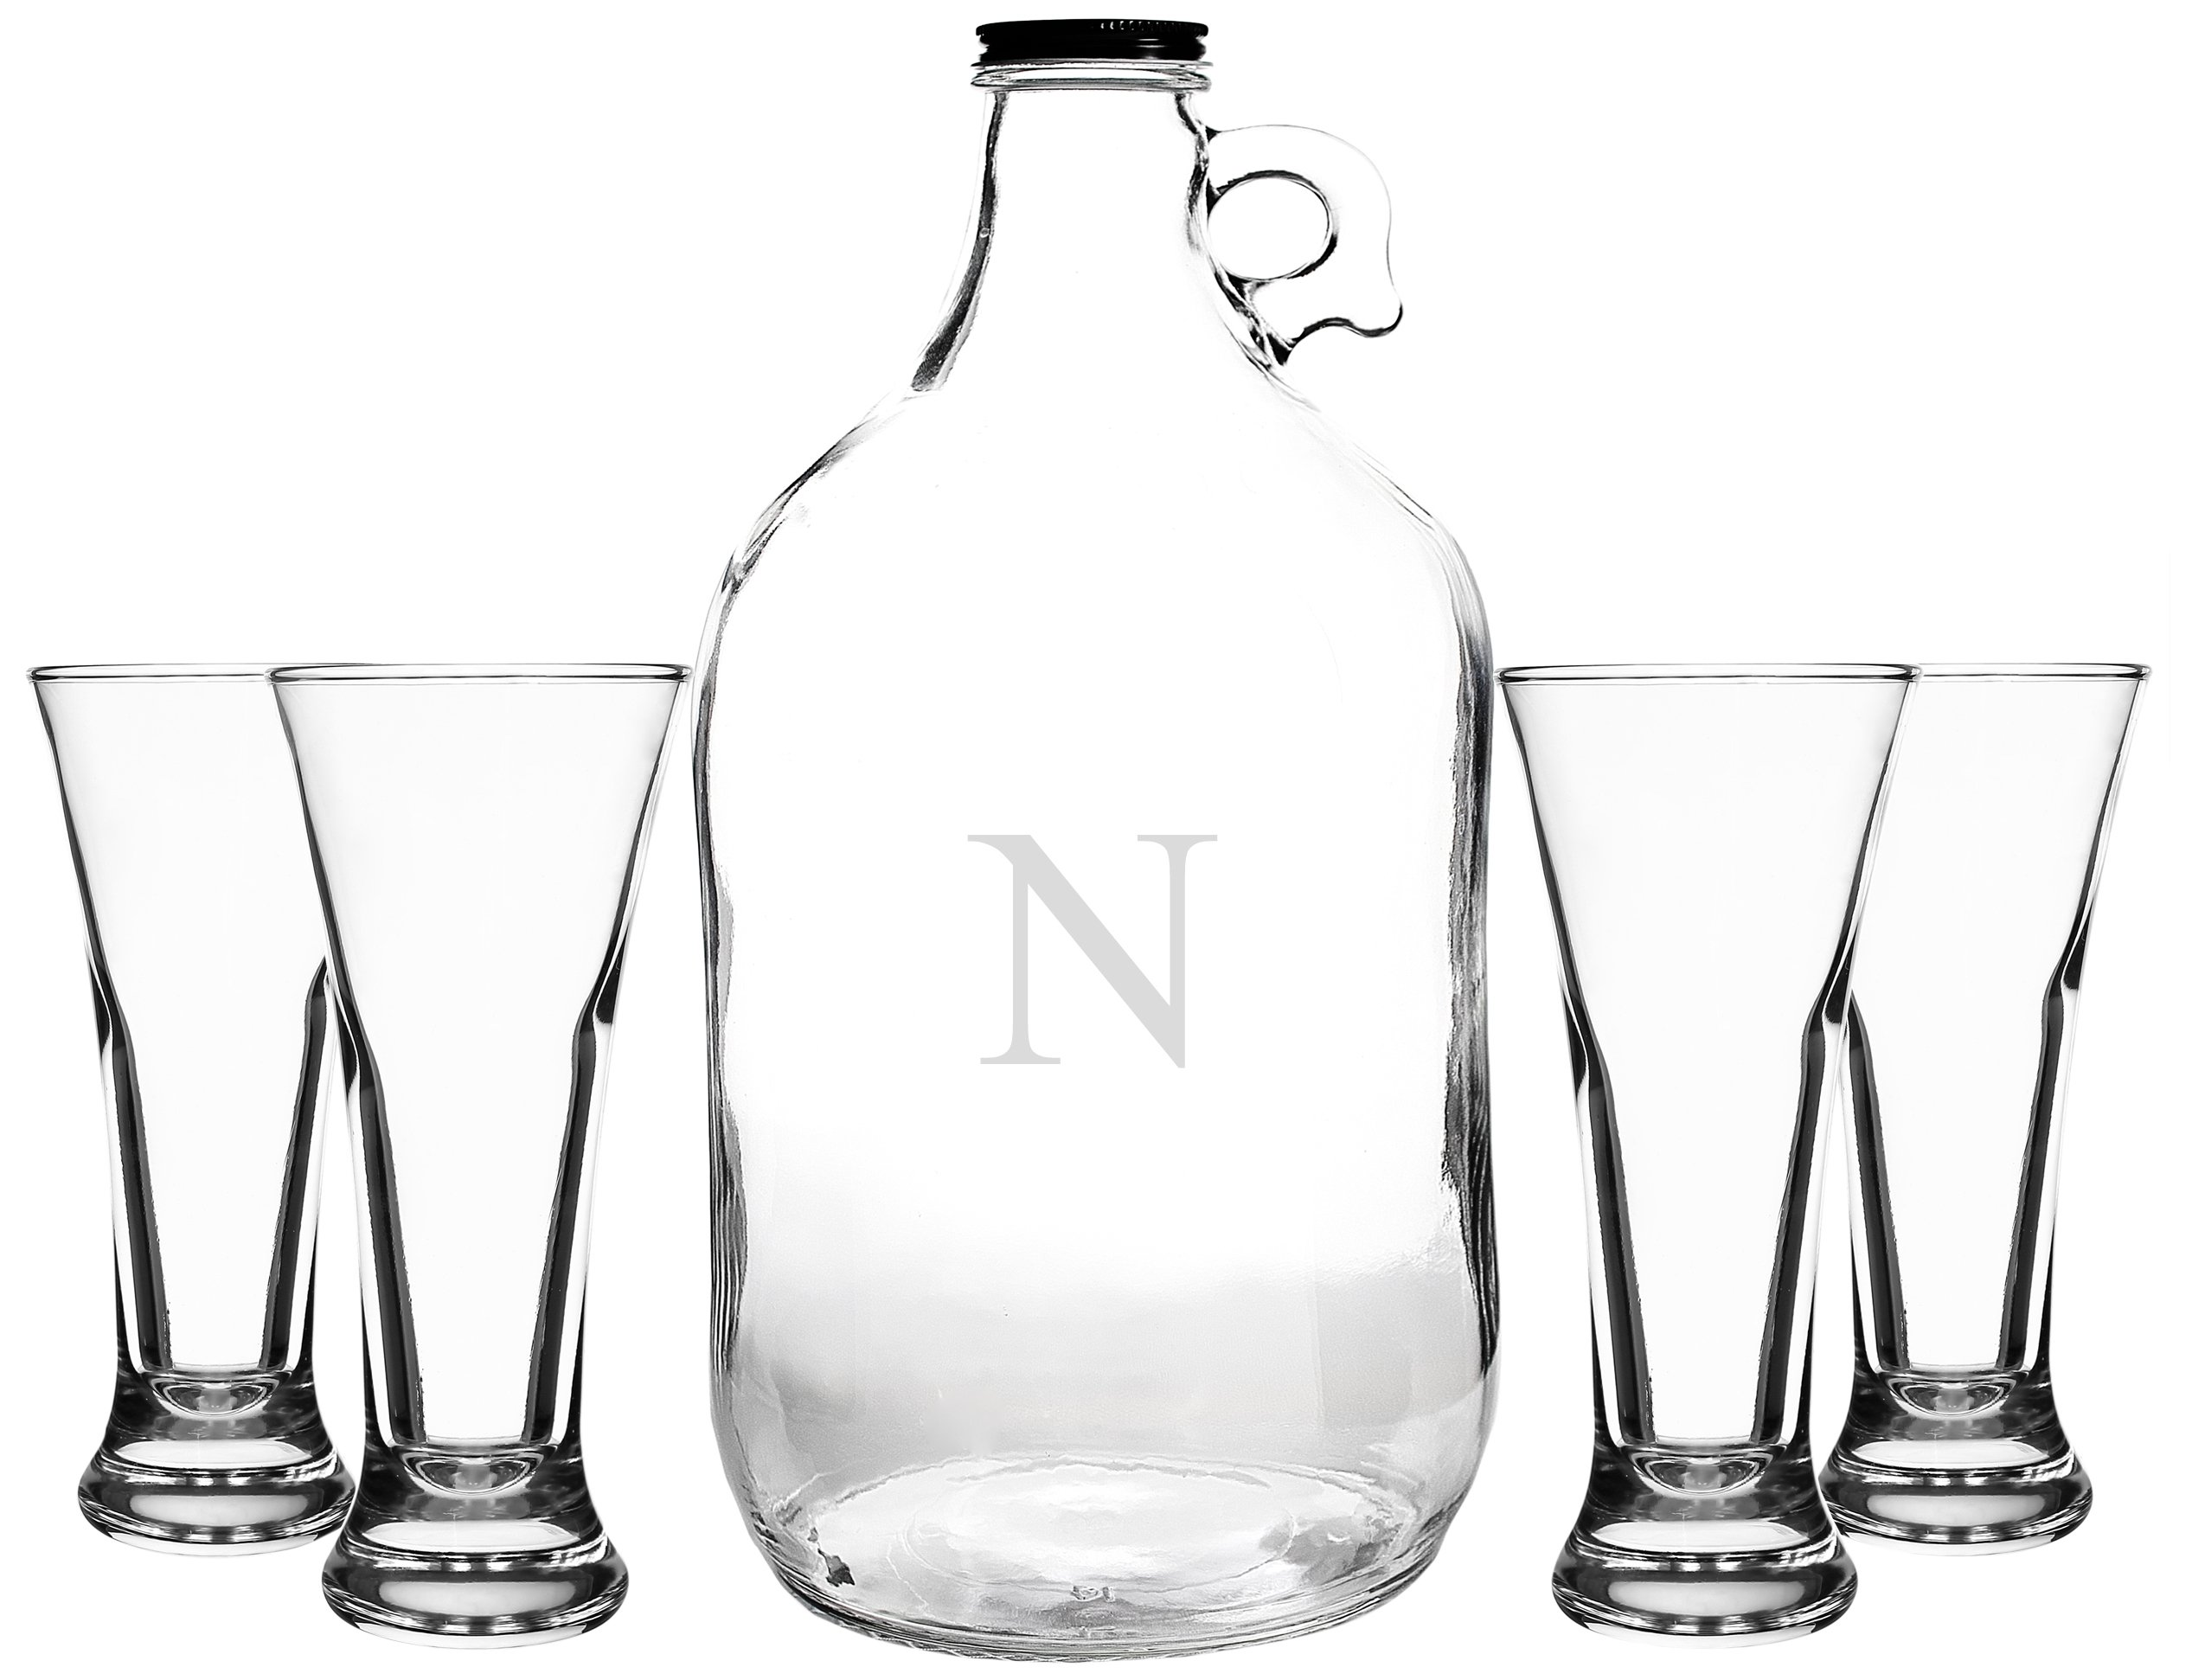 Cathy's Concepts Personalized Craft Beer Growler & Tasters Set, Letter N